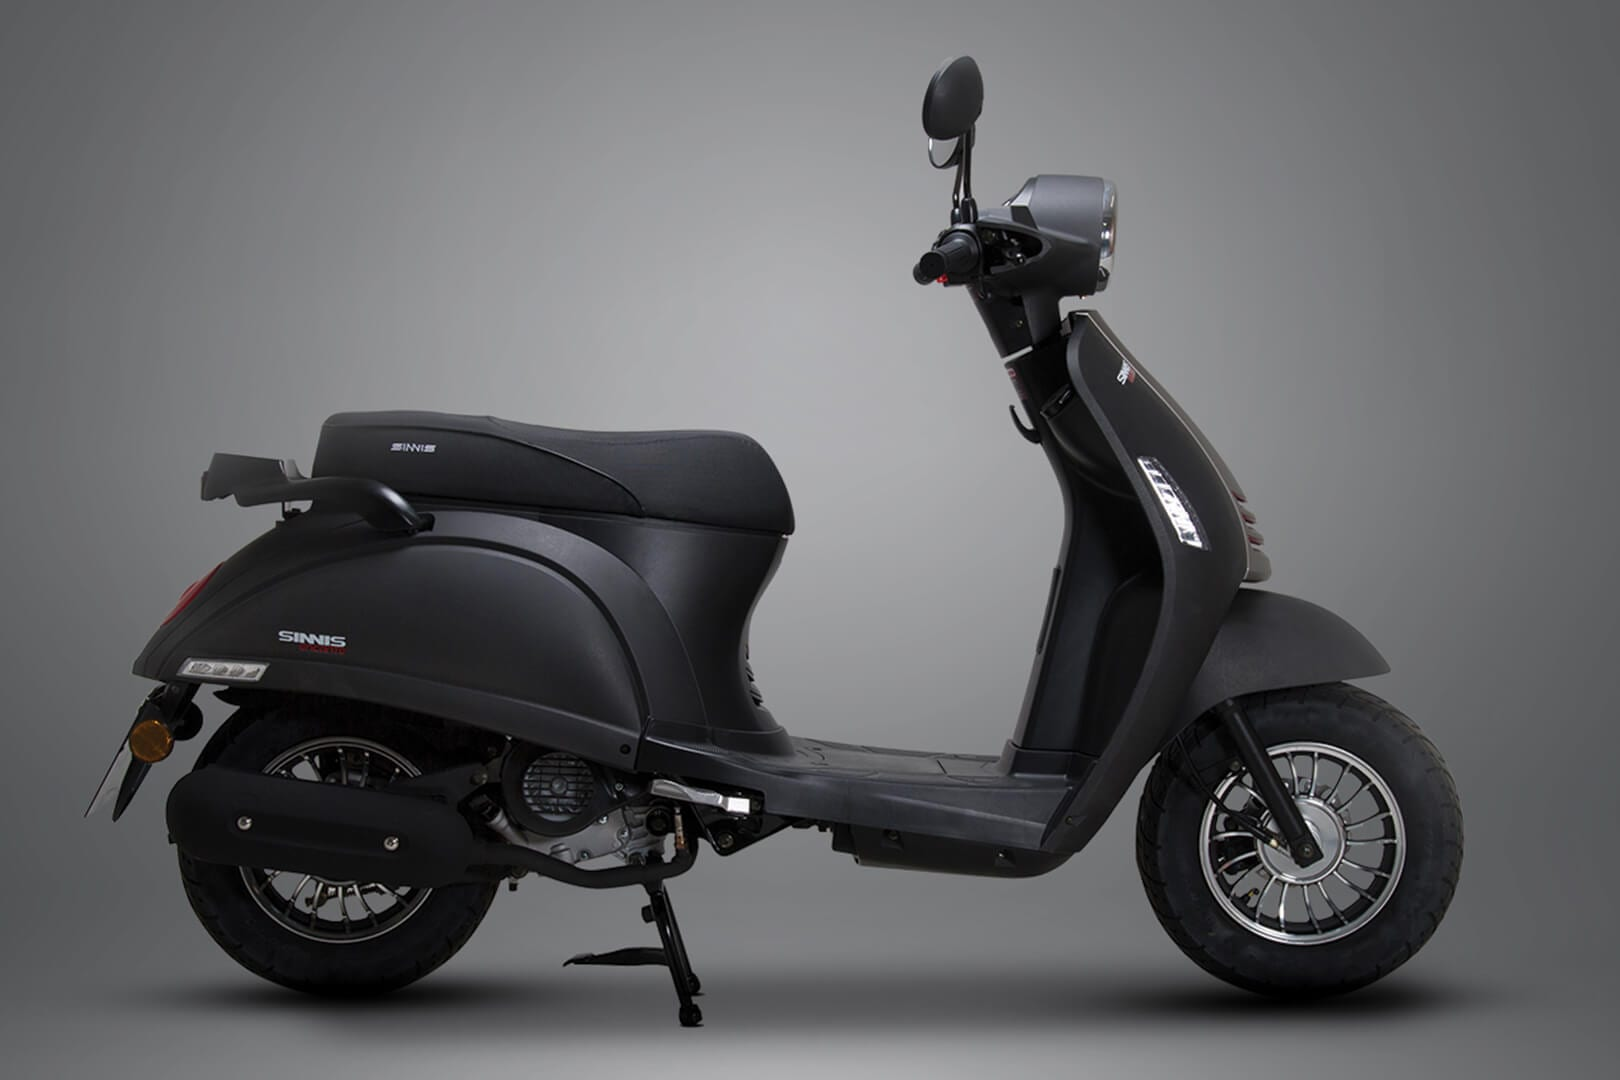 Sinnis Black Encanto 50cc scooter Studio Image